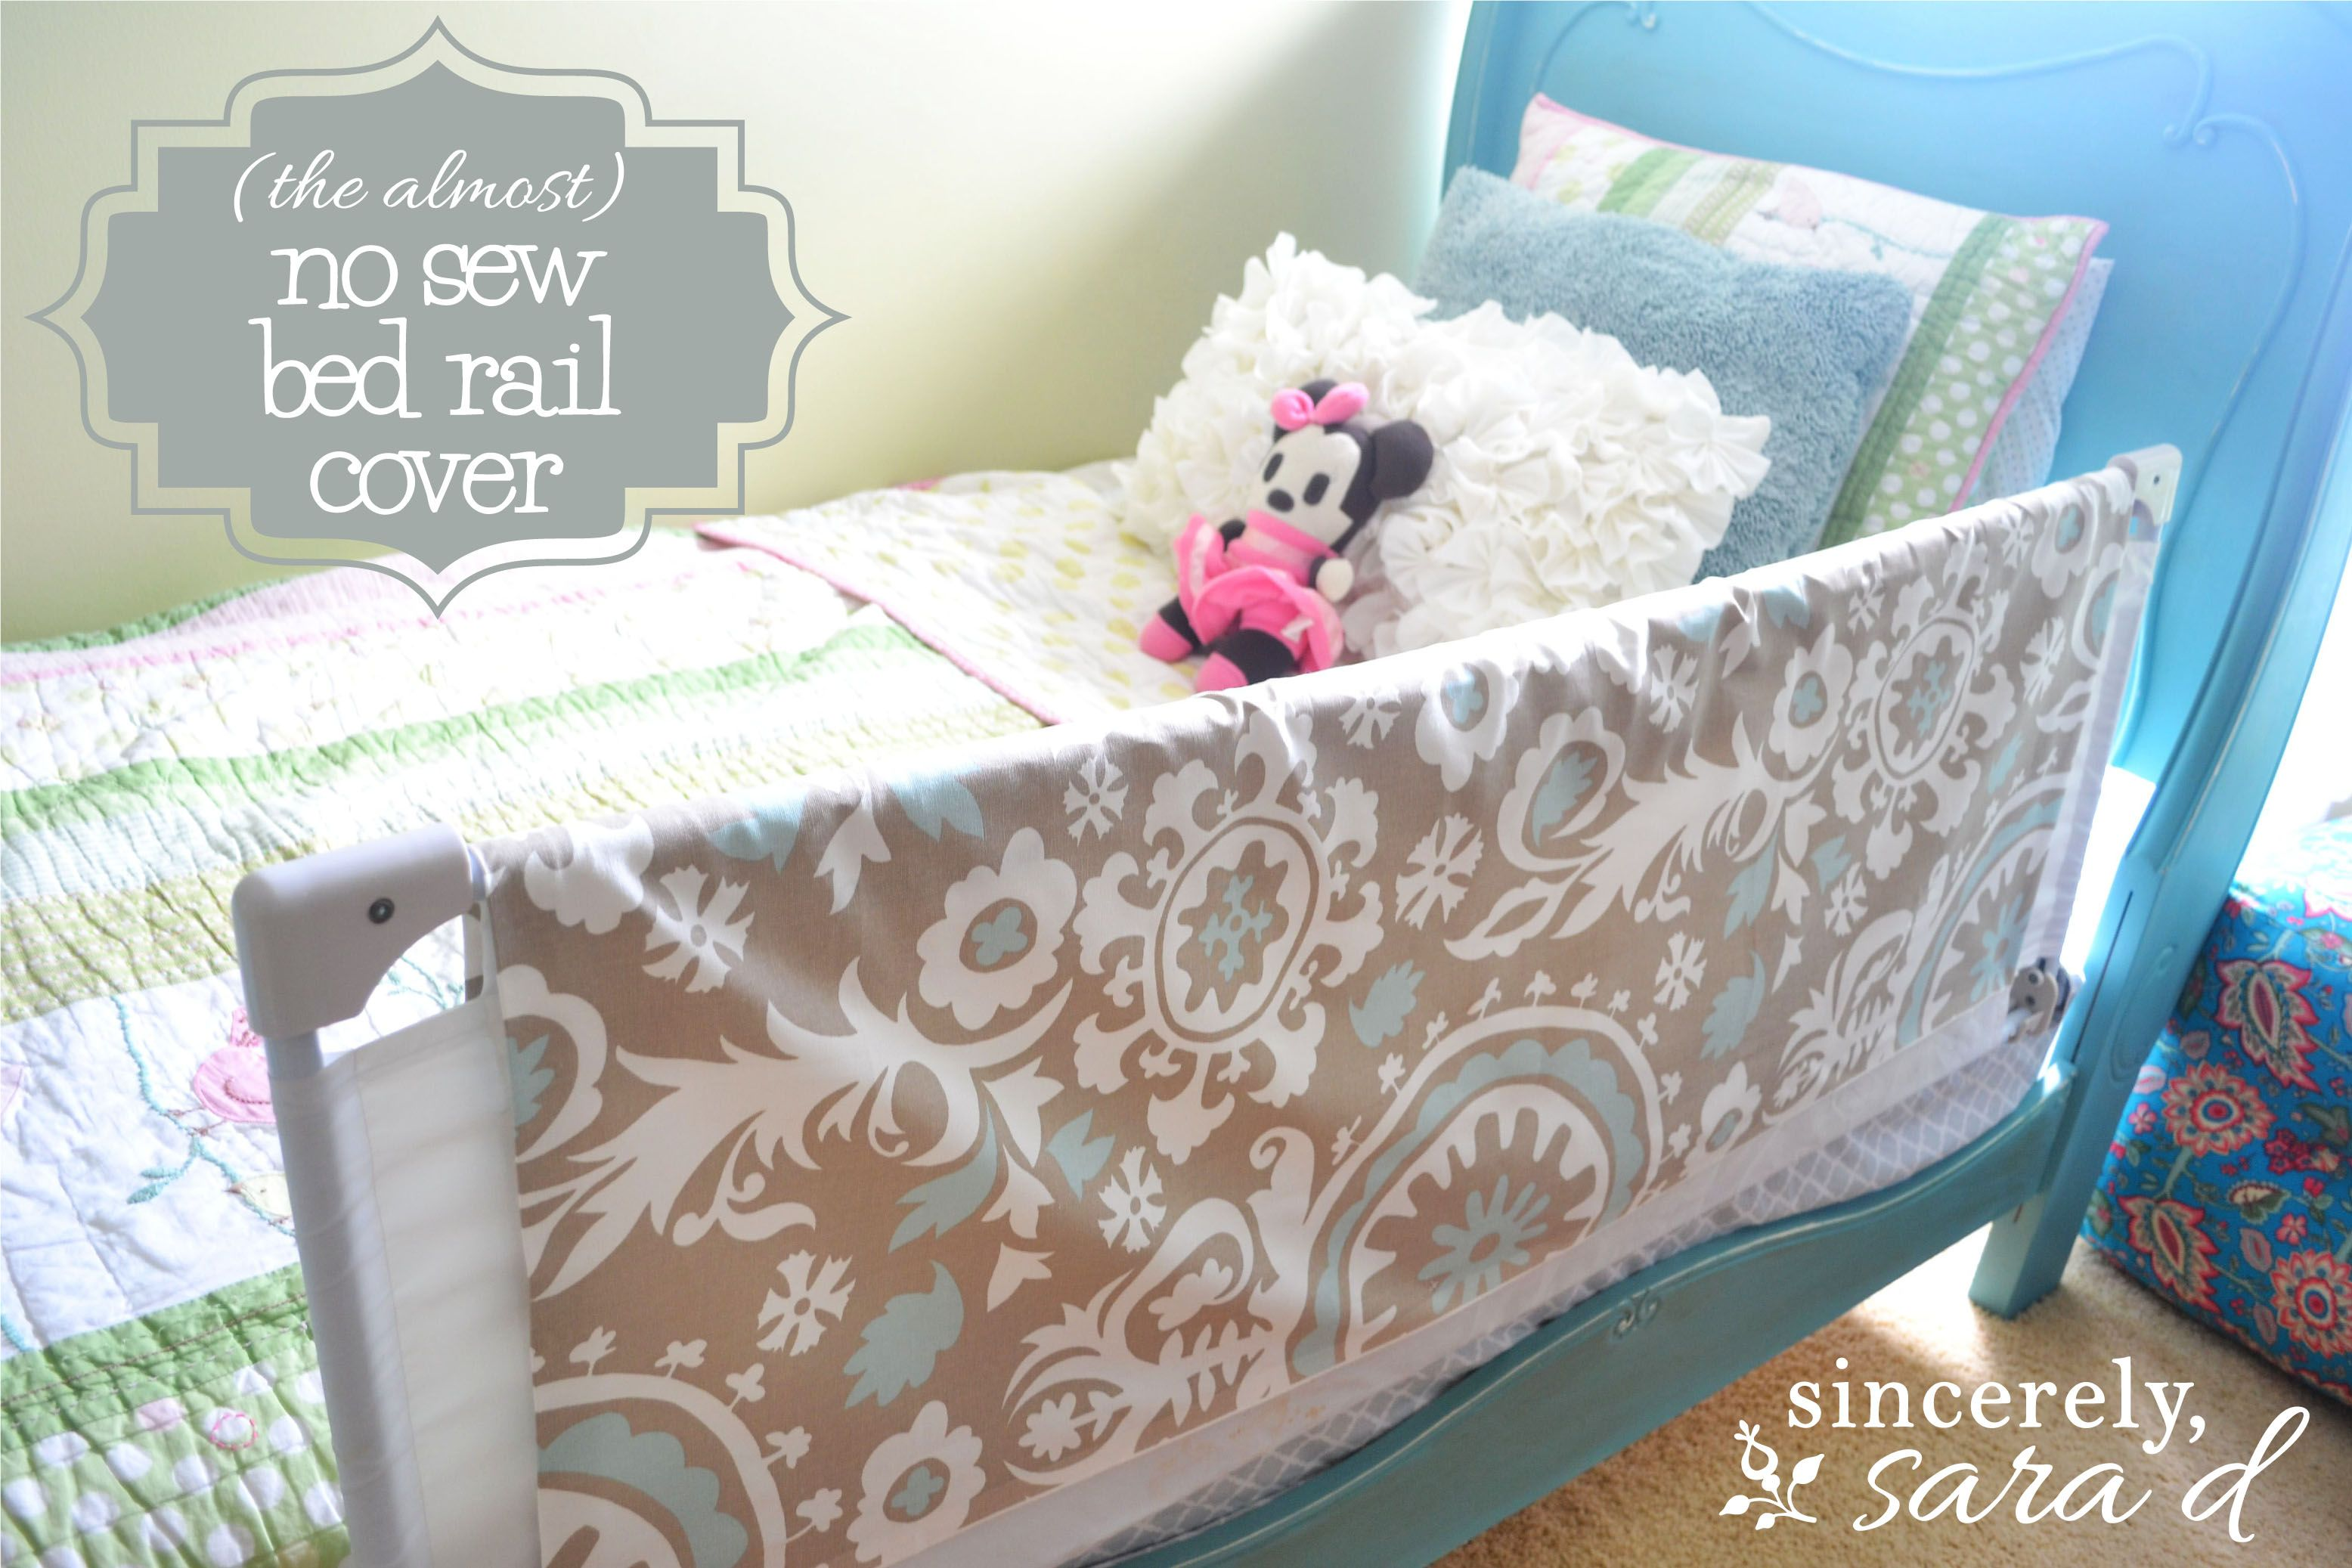 (the almost) no sew bed rail cover Diy toddler bed, Kids